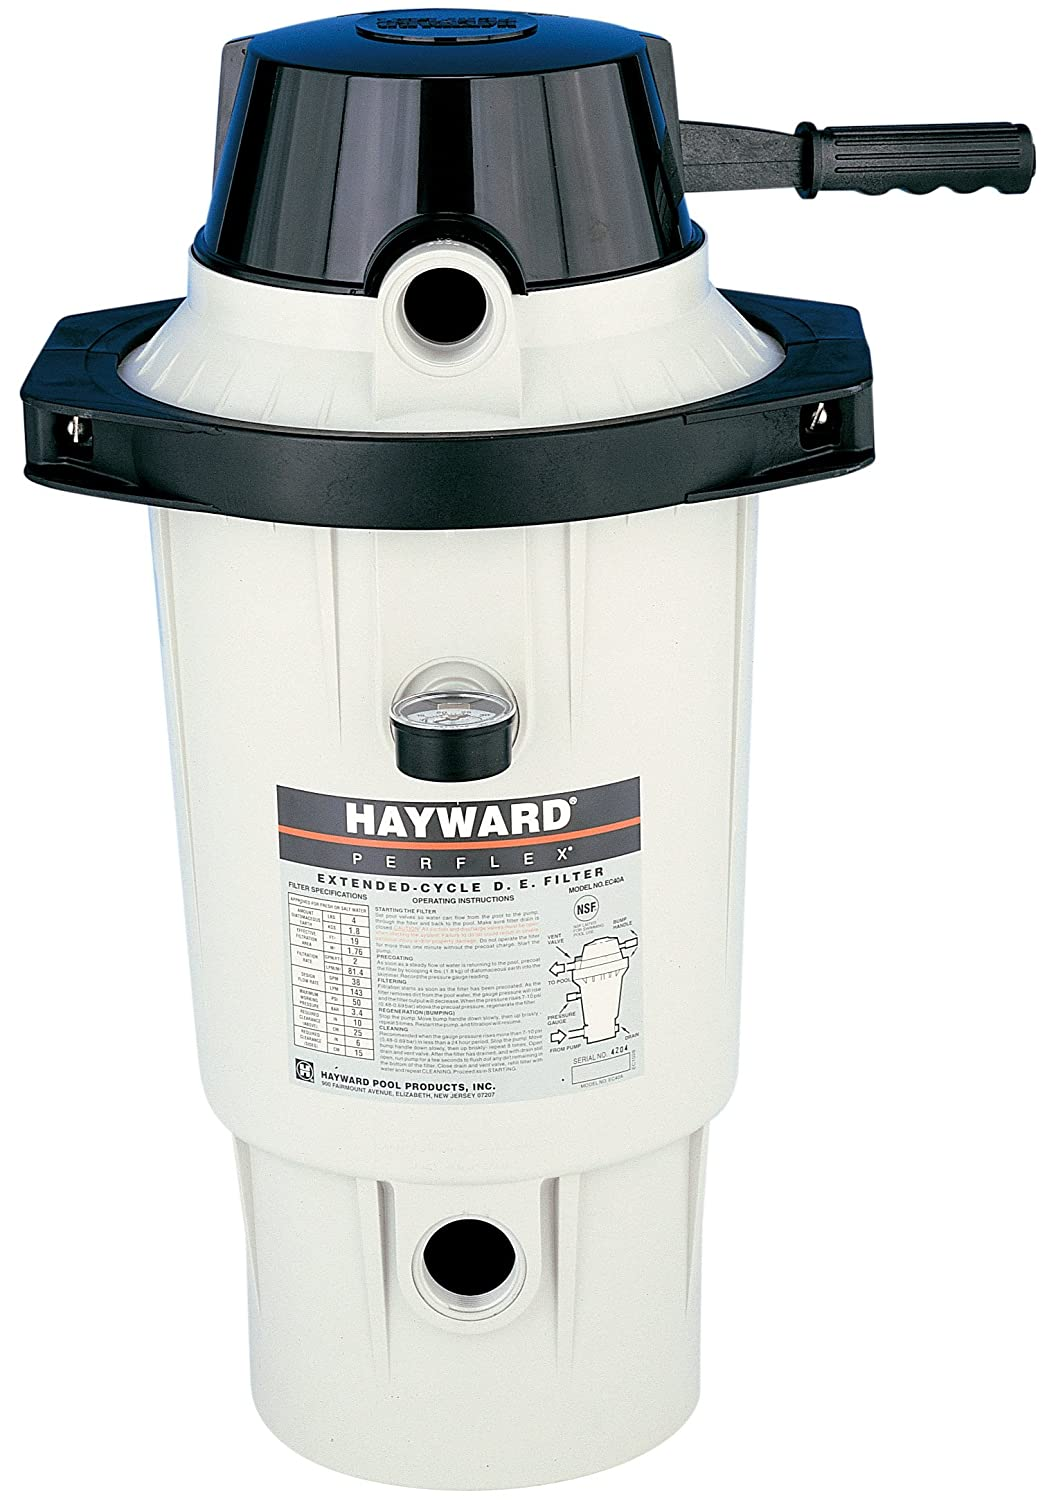 Amazon.com : Hayward EC50AC Perflex Extended-Cycle Above-Ground / in-ground  Pools D.E. Filter up to 30, 000 gallons : Swimming Pool De Filters : Garden  & ...